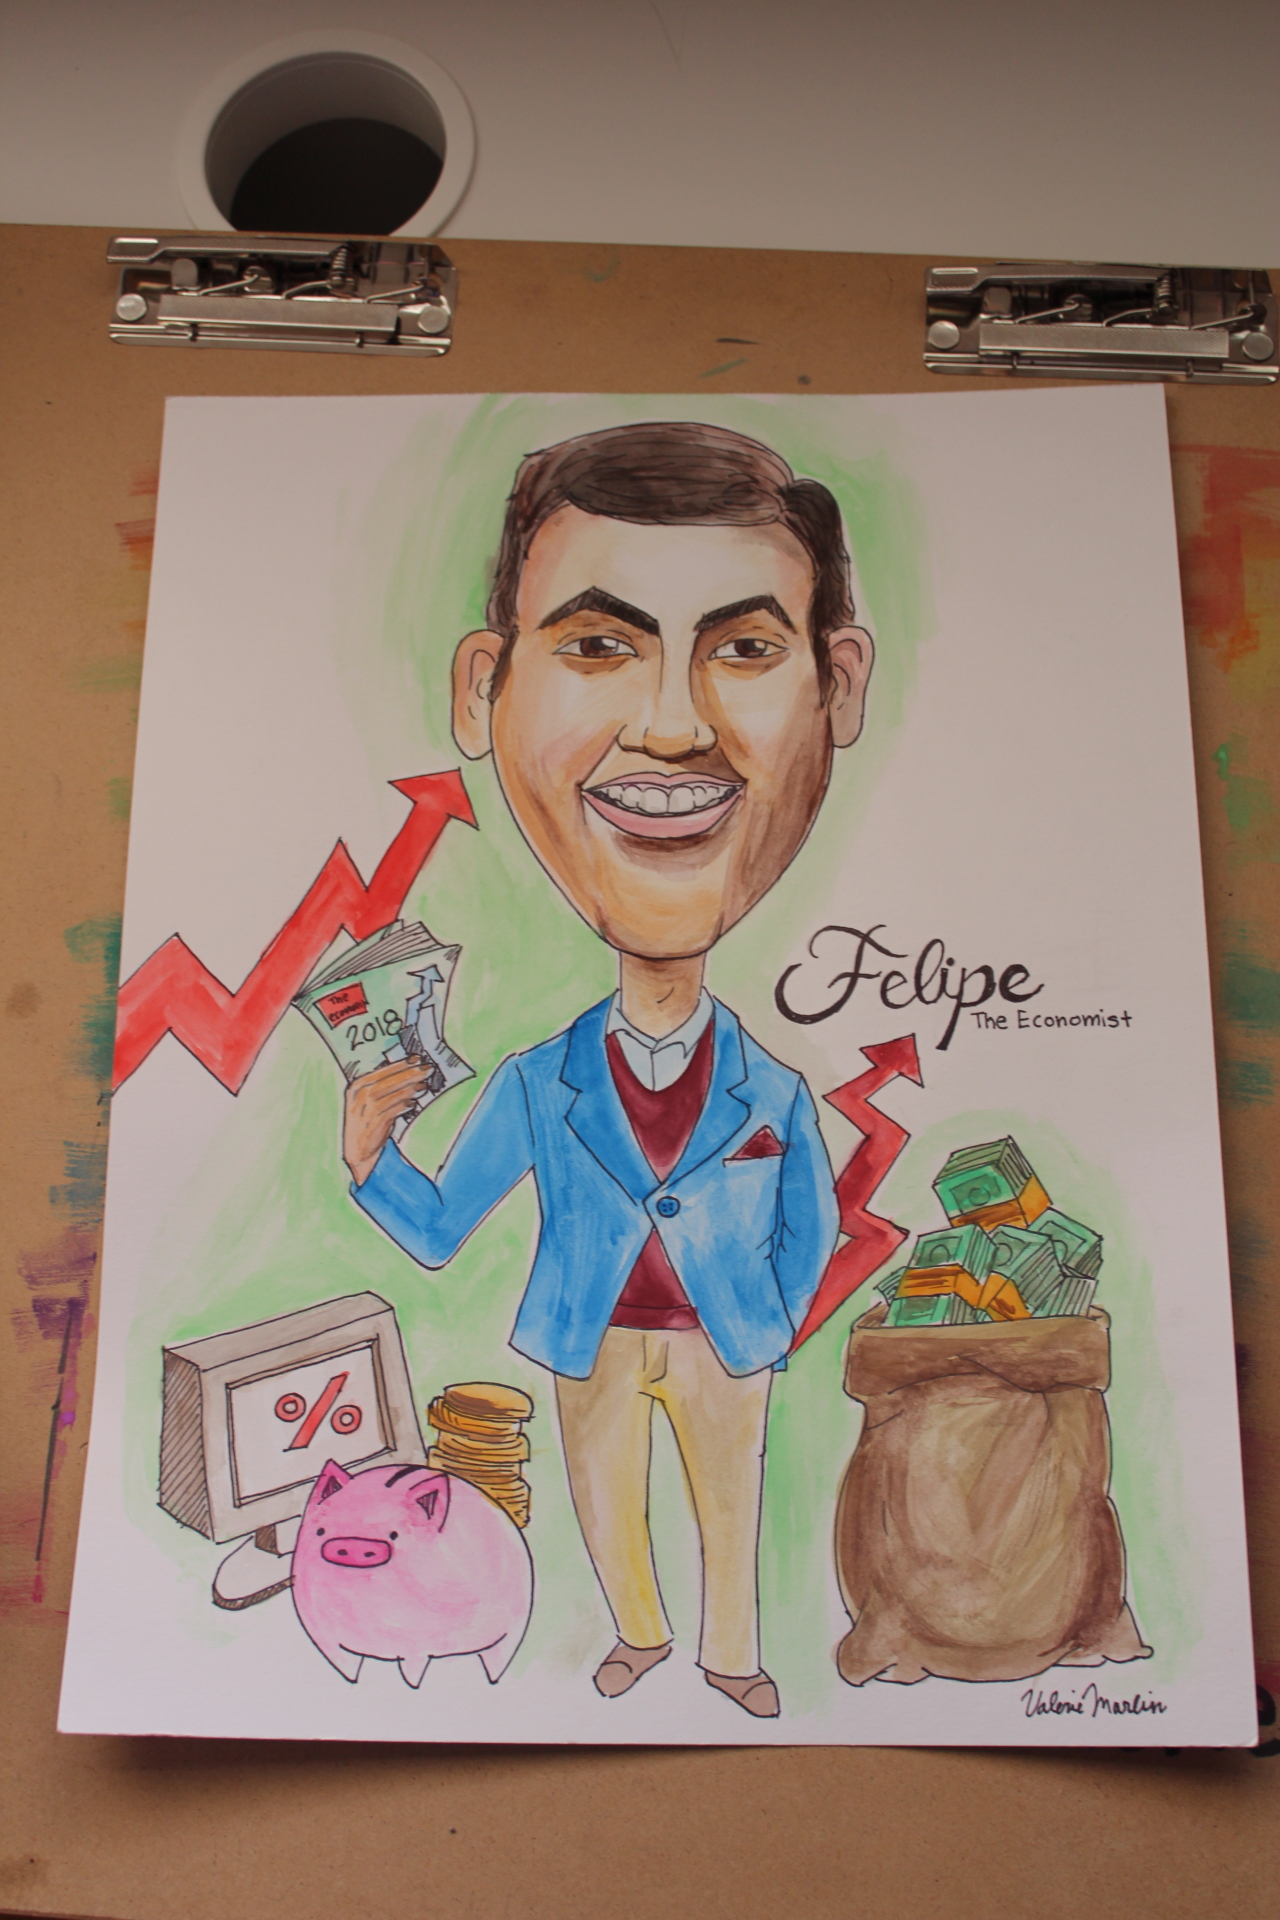 I'm a Caricature artist #ARTSOCIETYBROWARD